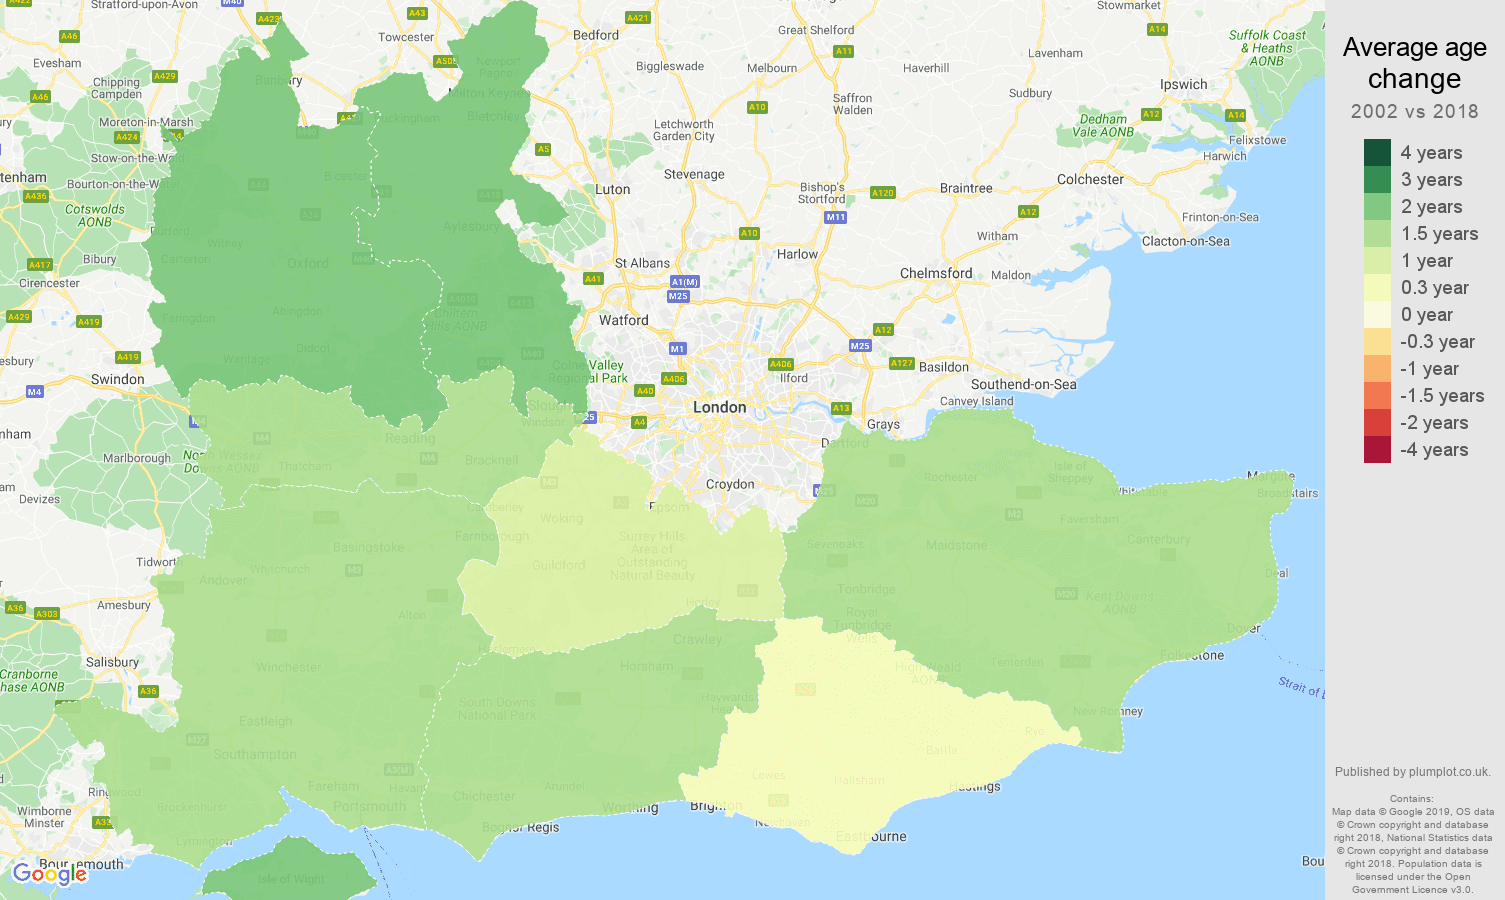 South East average age change map